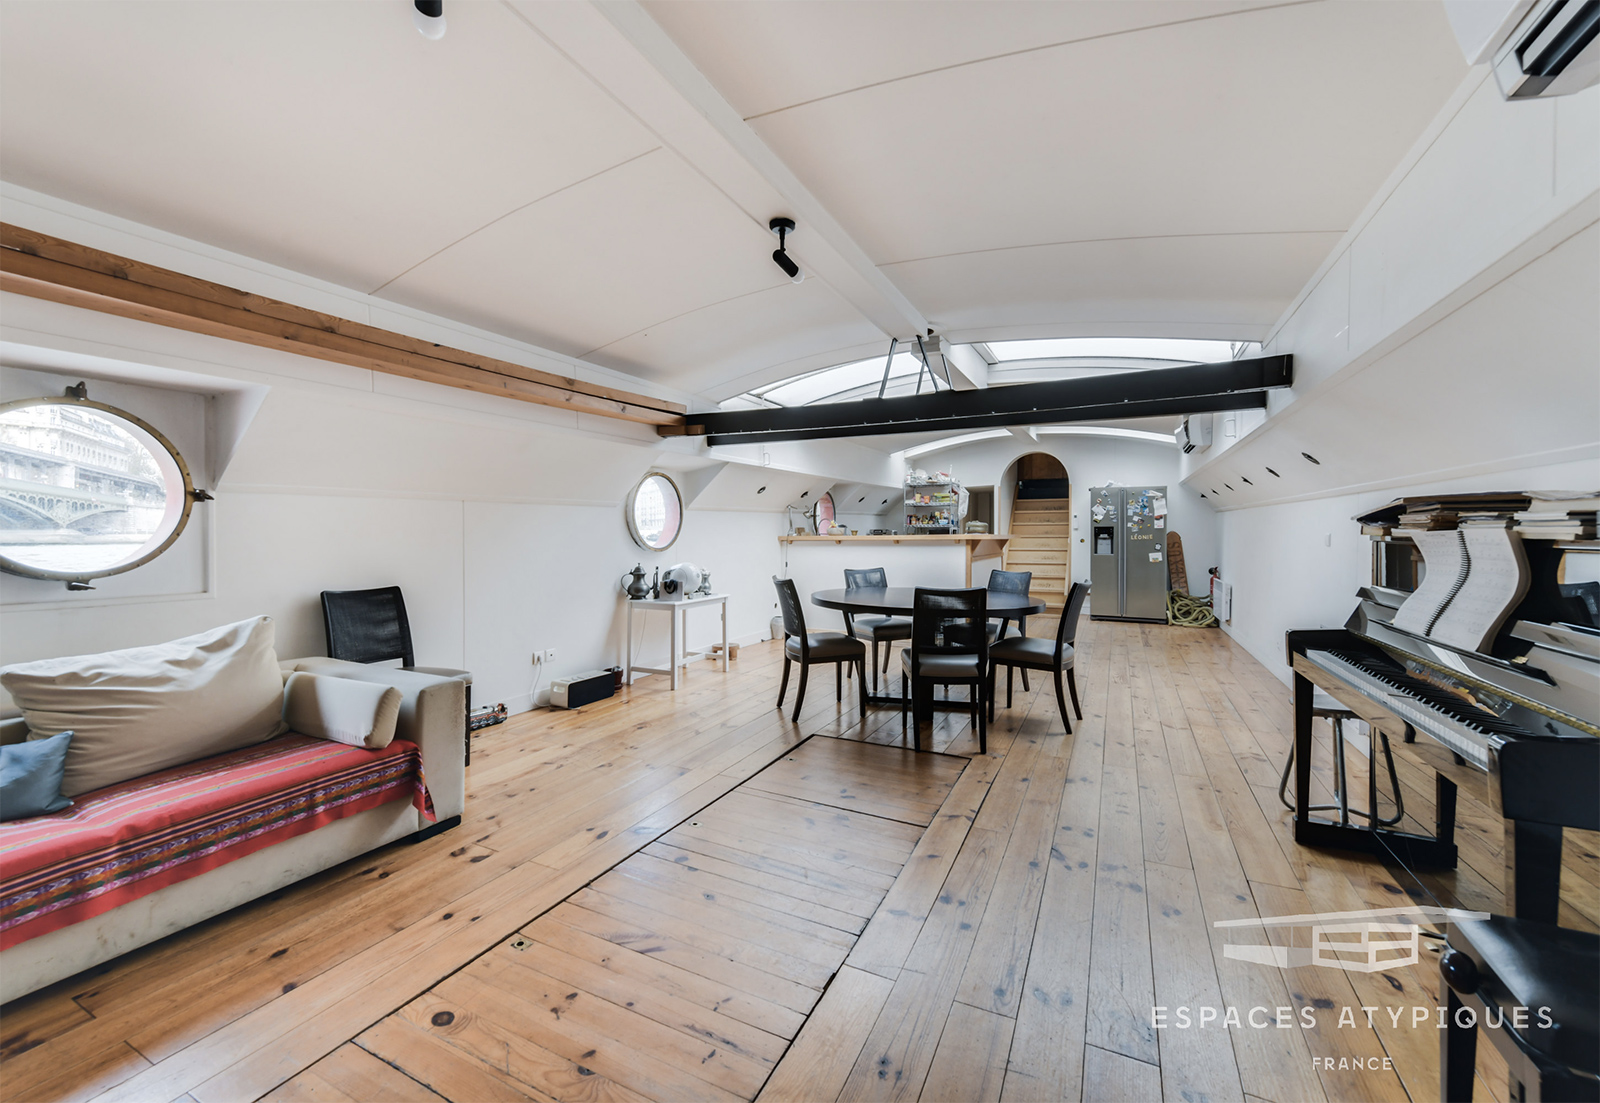 5 floating homes on the market right now - The Spaces